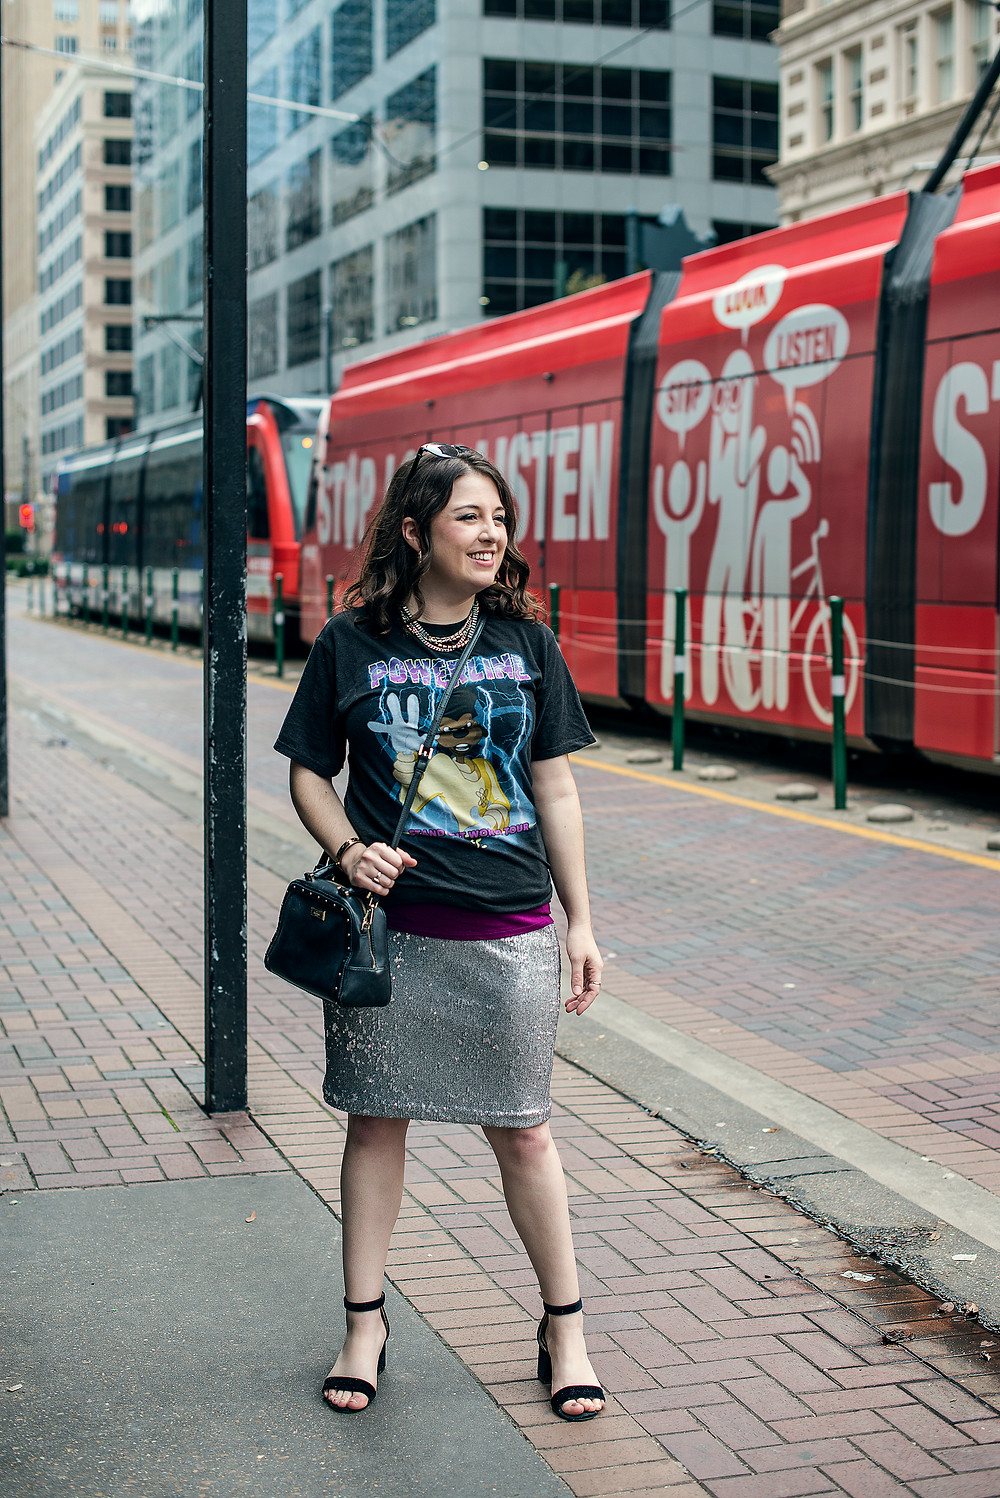 Houston Personal Stylist pairs a graphic tee with sequin skirt for Spring